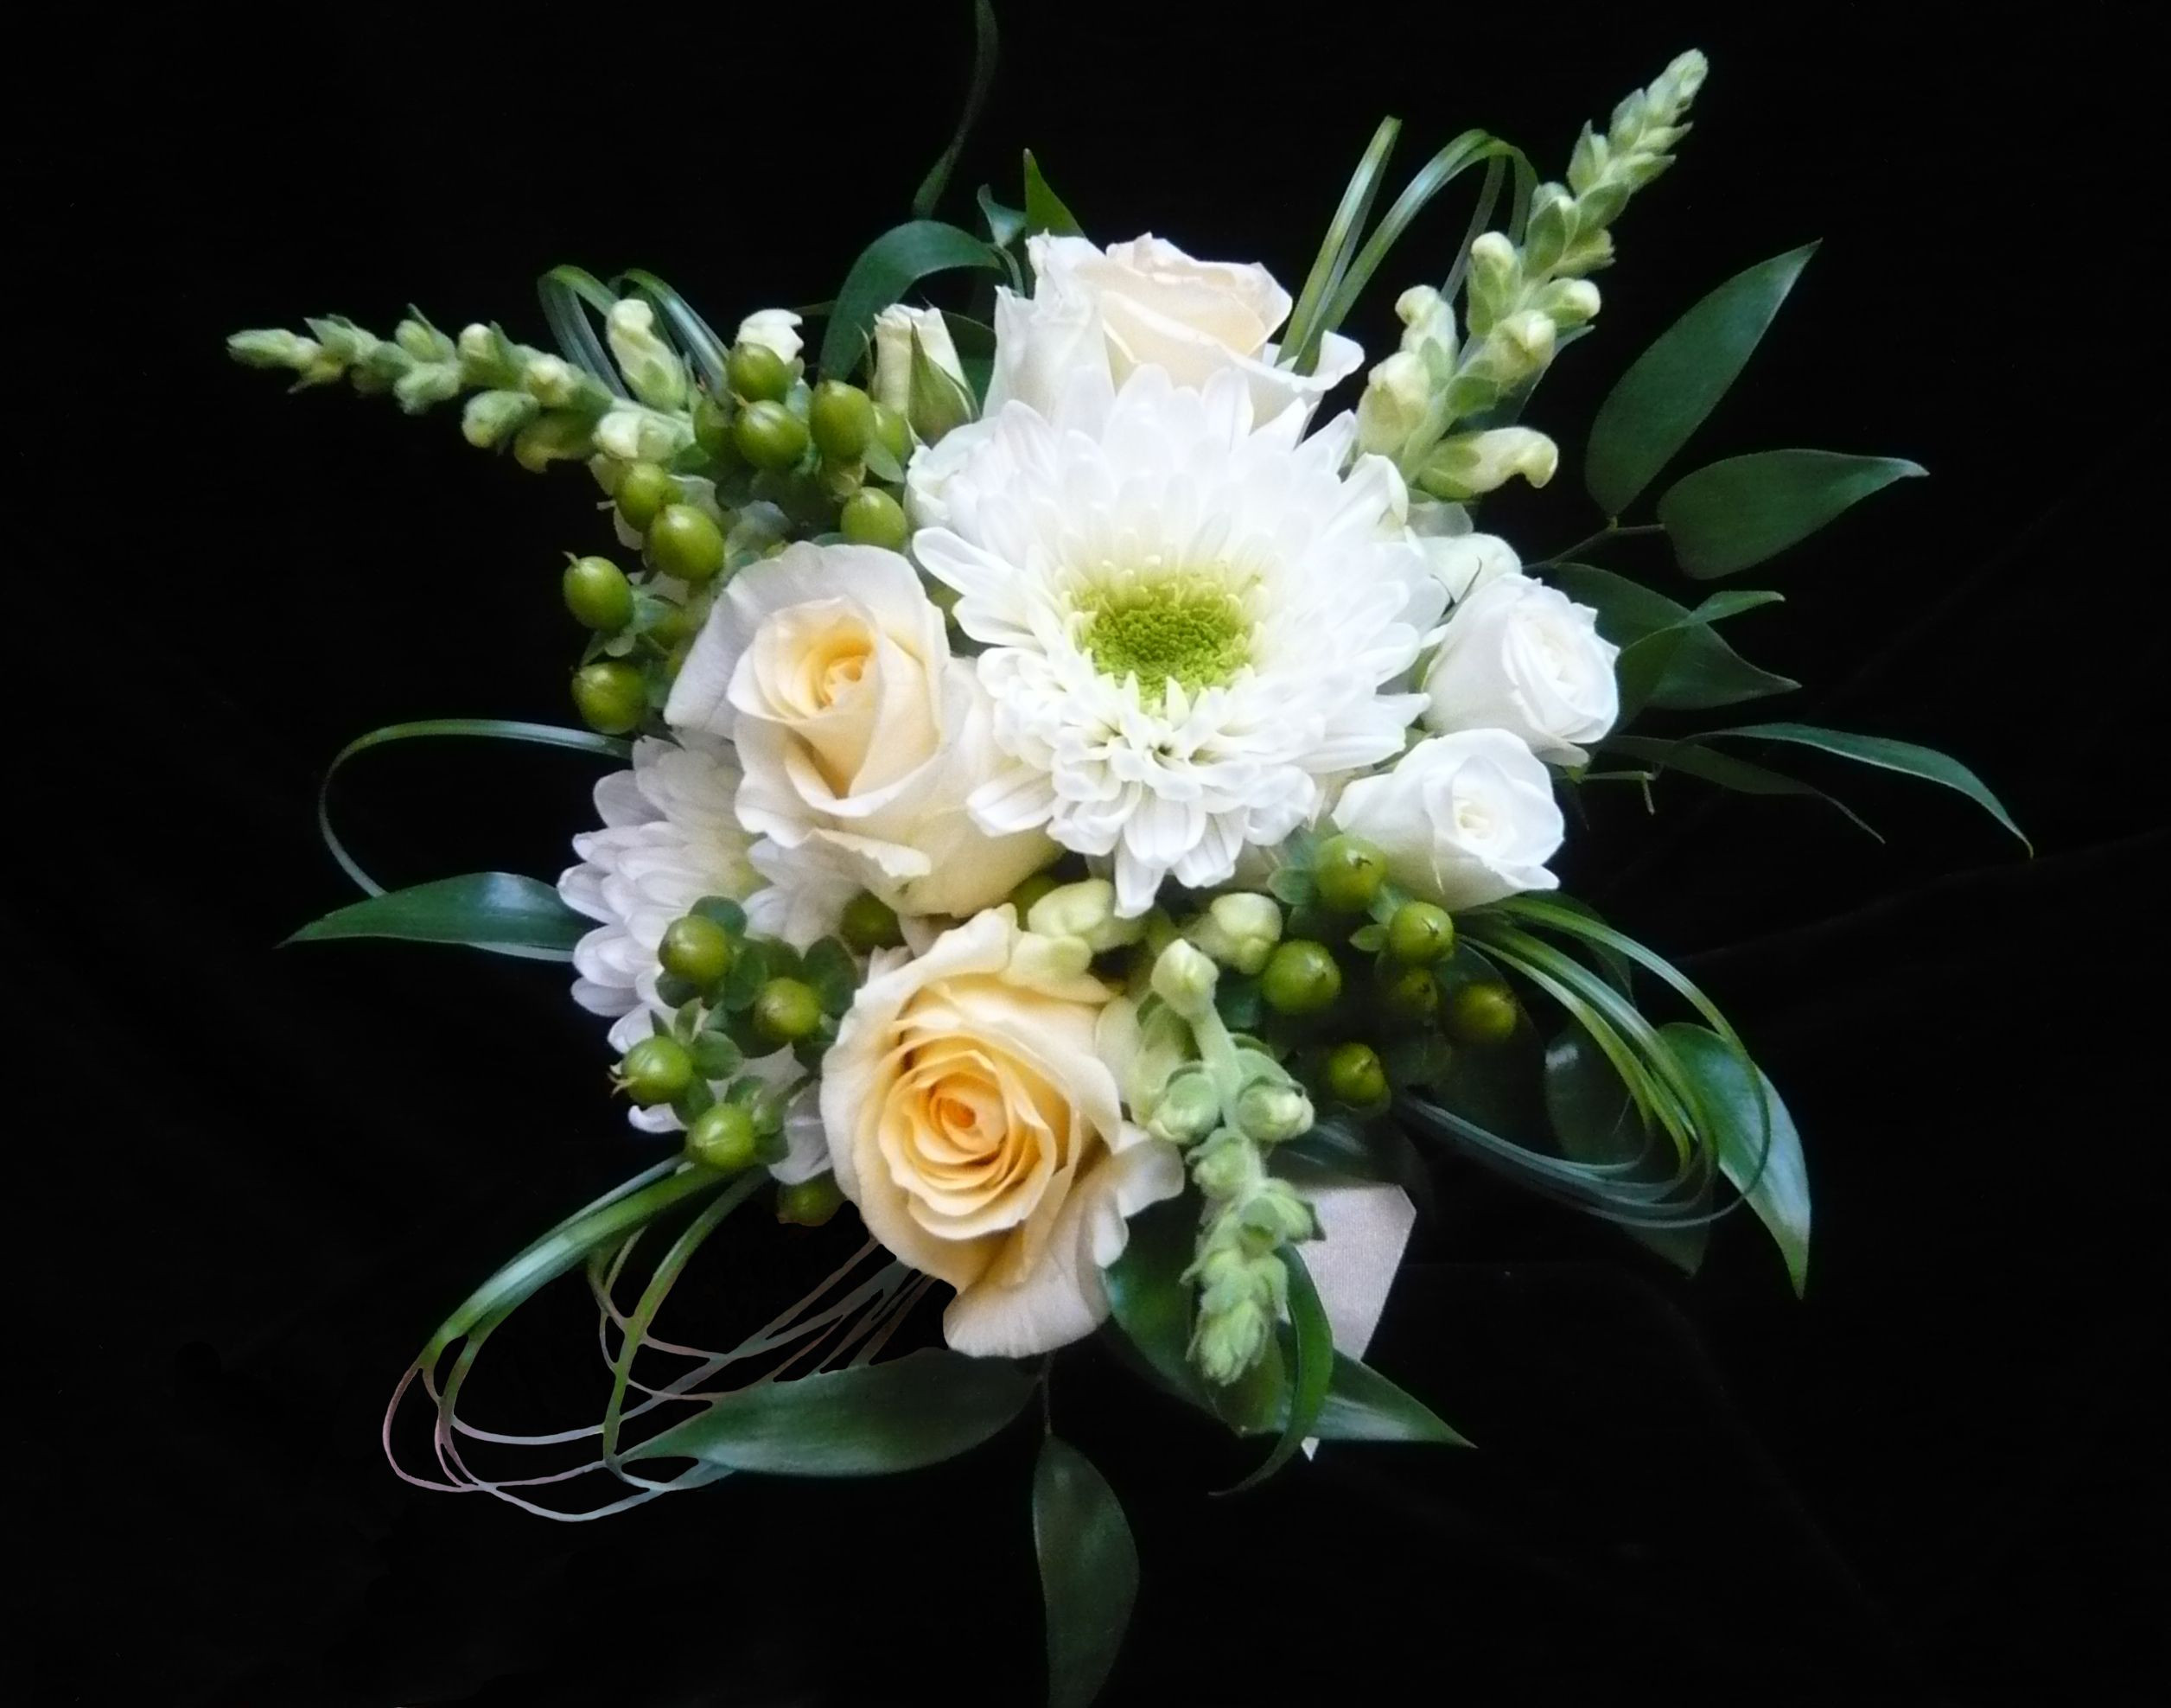 This was just the flower girl s bouquet roses chrysanthemums snapdragons hypericum berries